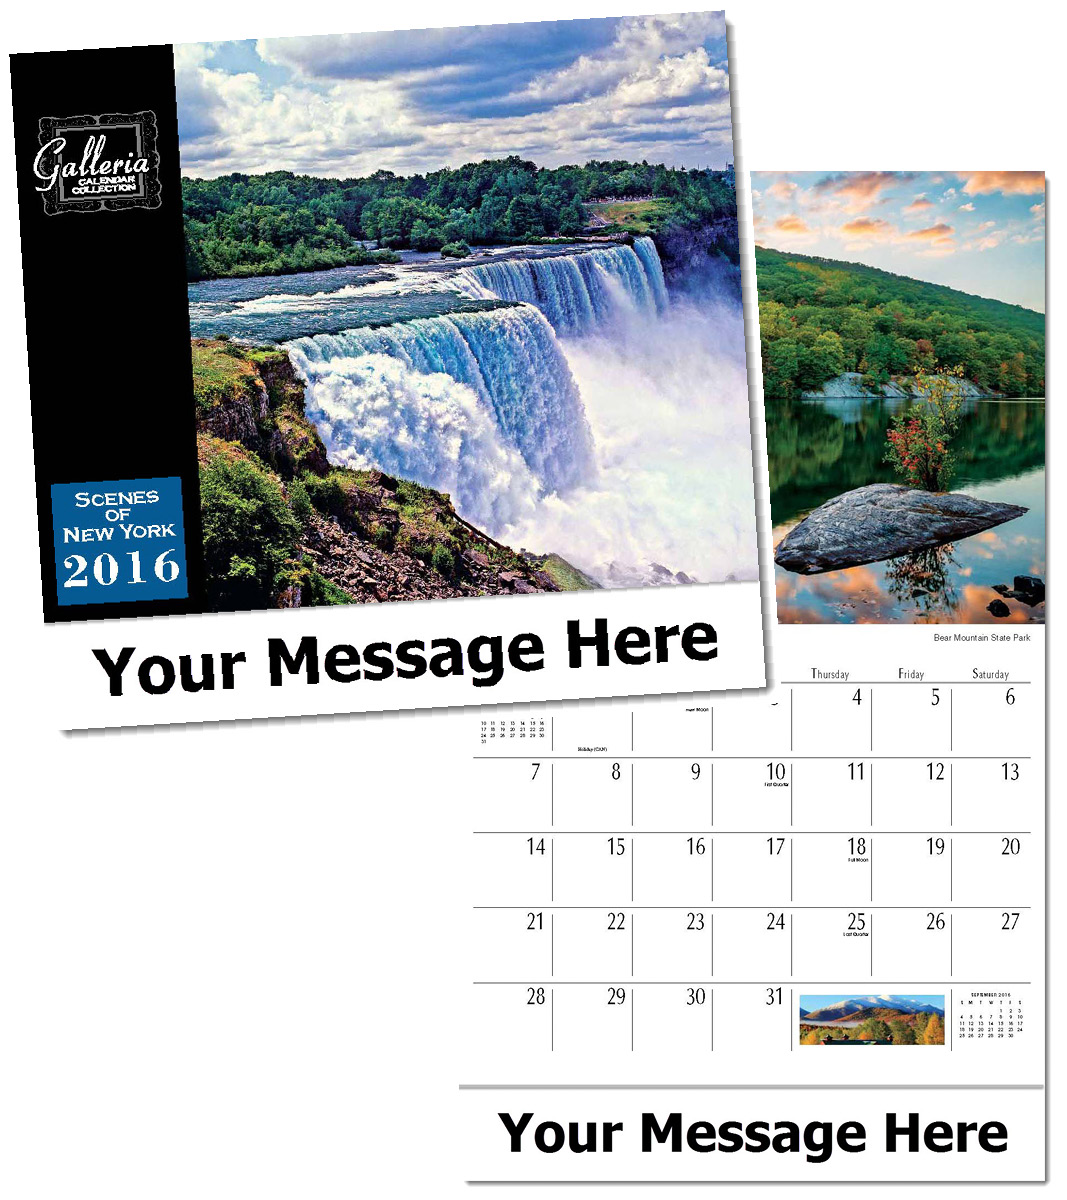 Wholesale Scenes of New York Calendars, Personalized with Custom Imprint